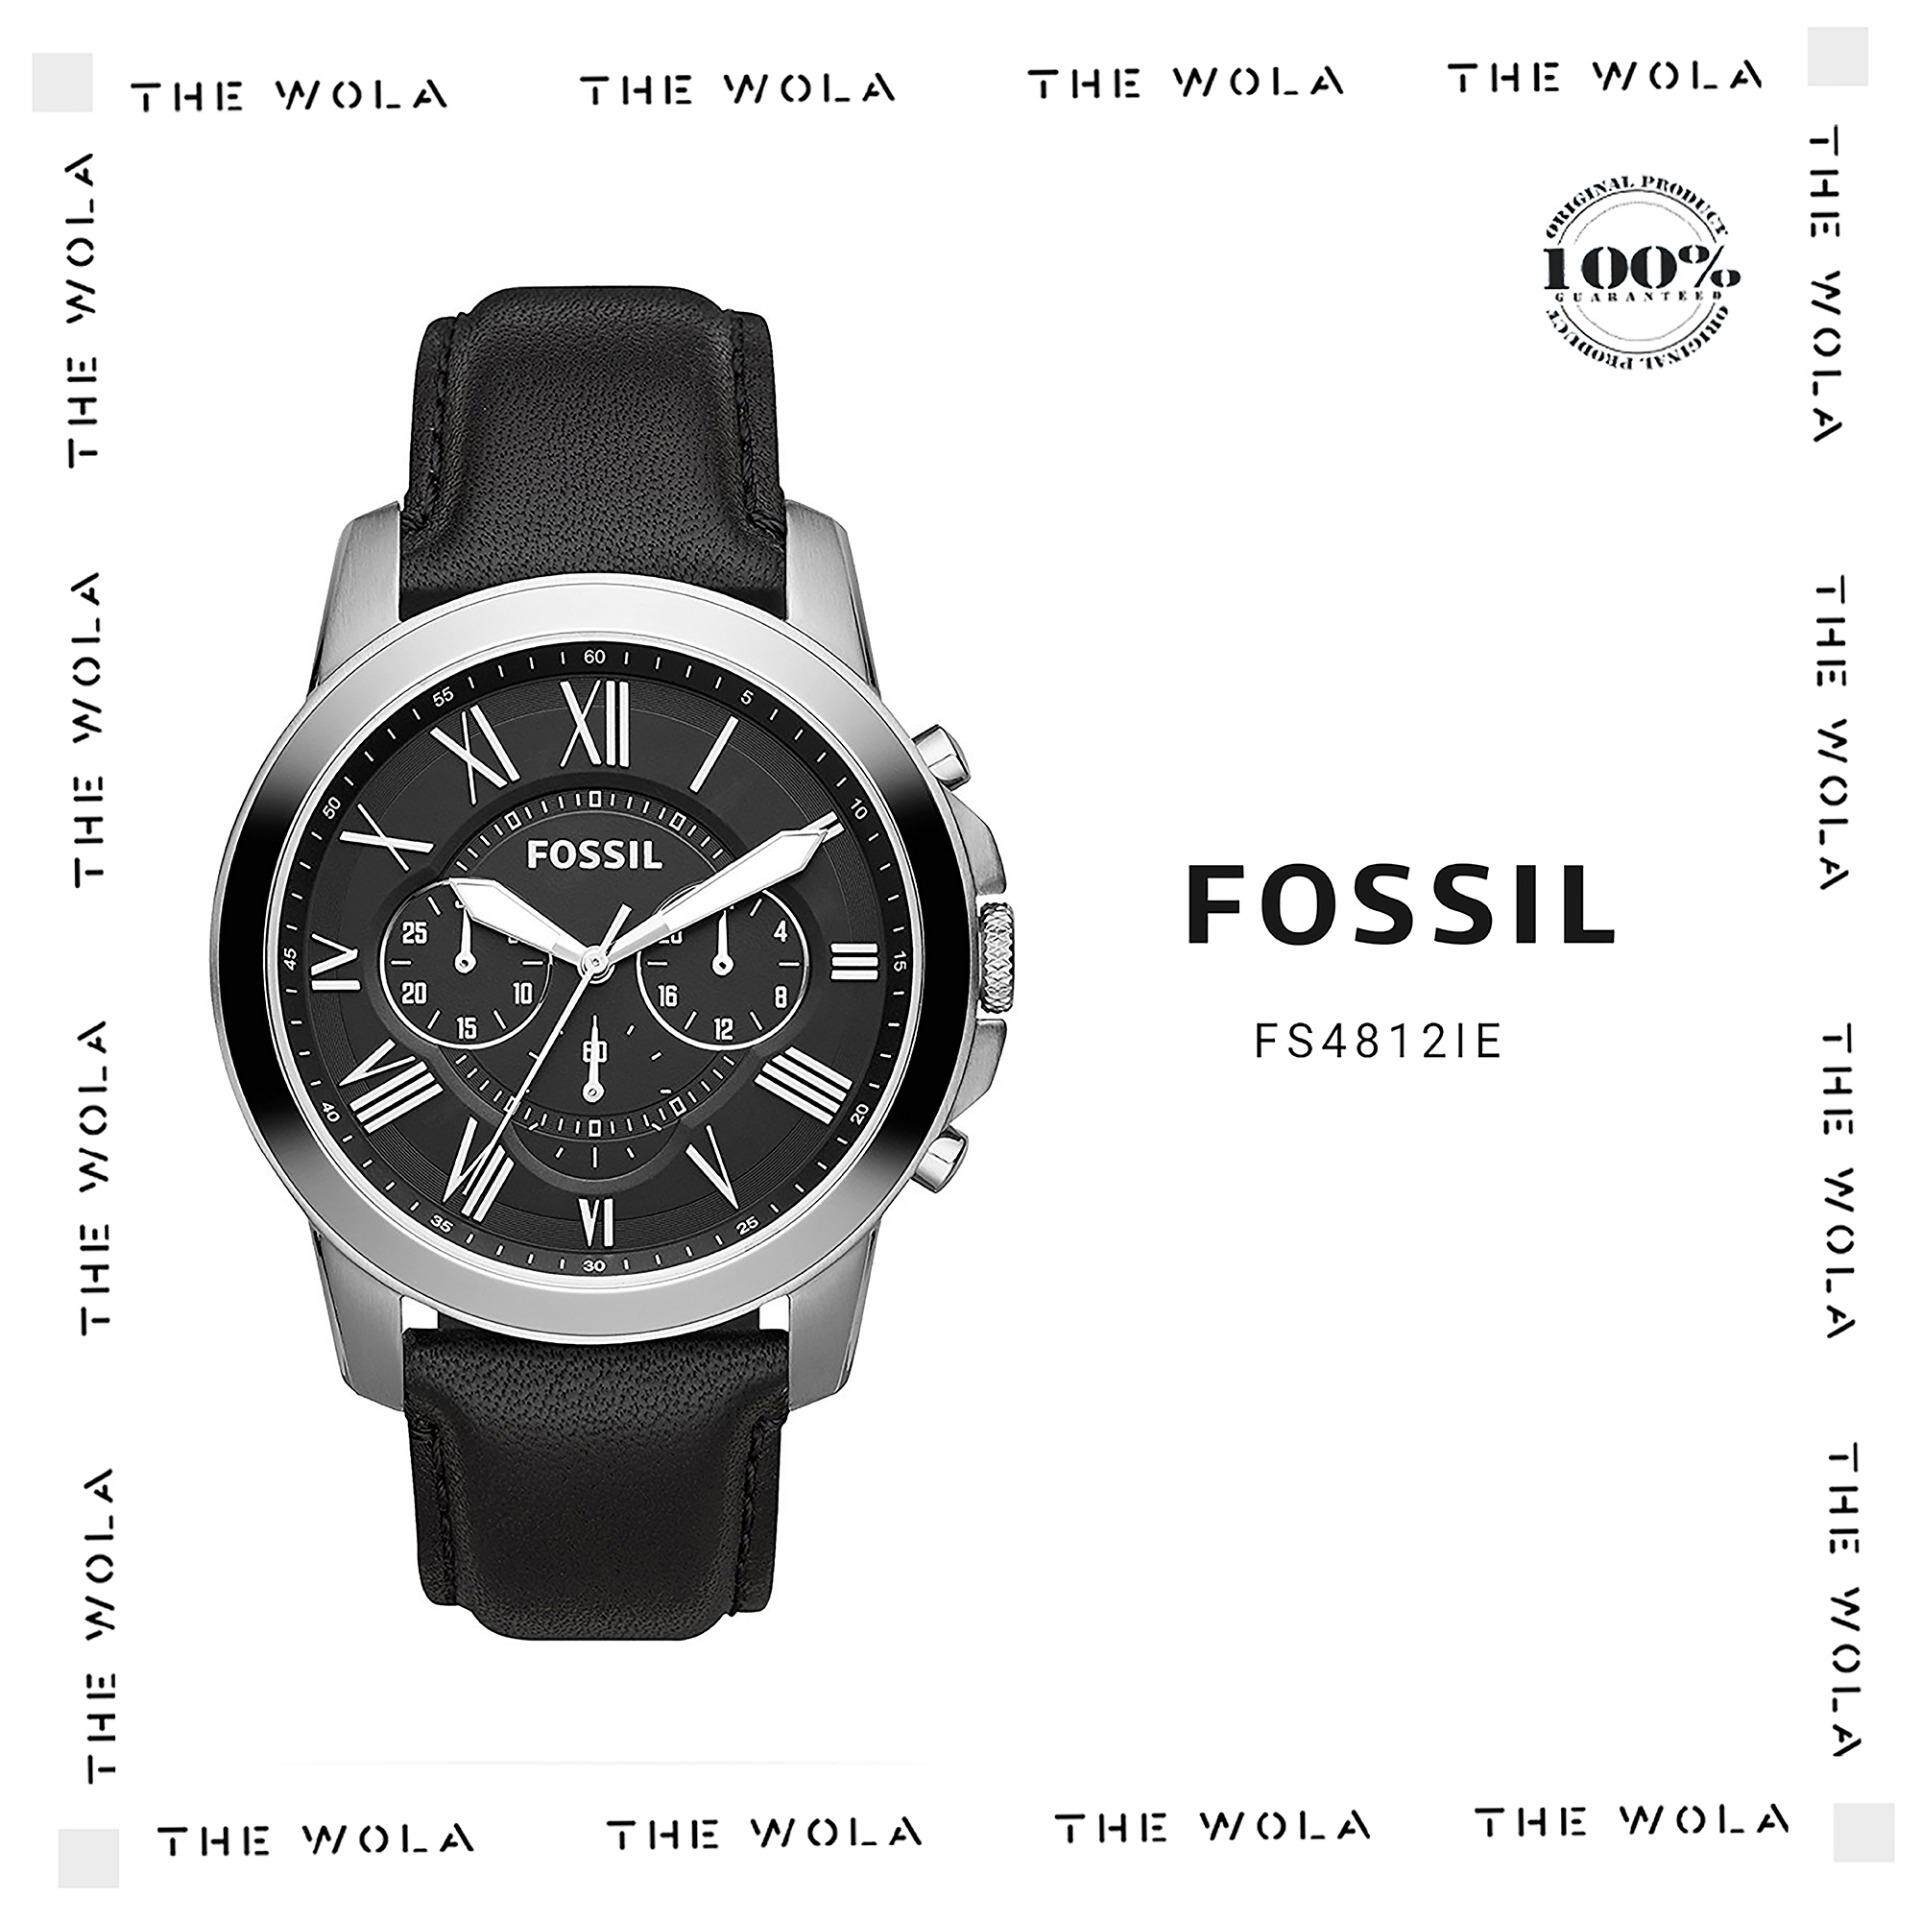 Fossil Products For Men Women The Best Price In Malaysia Fs4656 Jam Tangan Pria Original Casual Watch Fs4812ie Genuine 2 Years Warranty